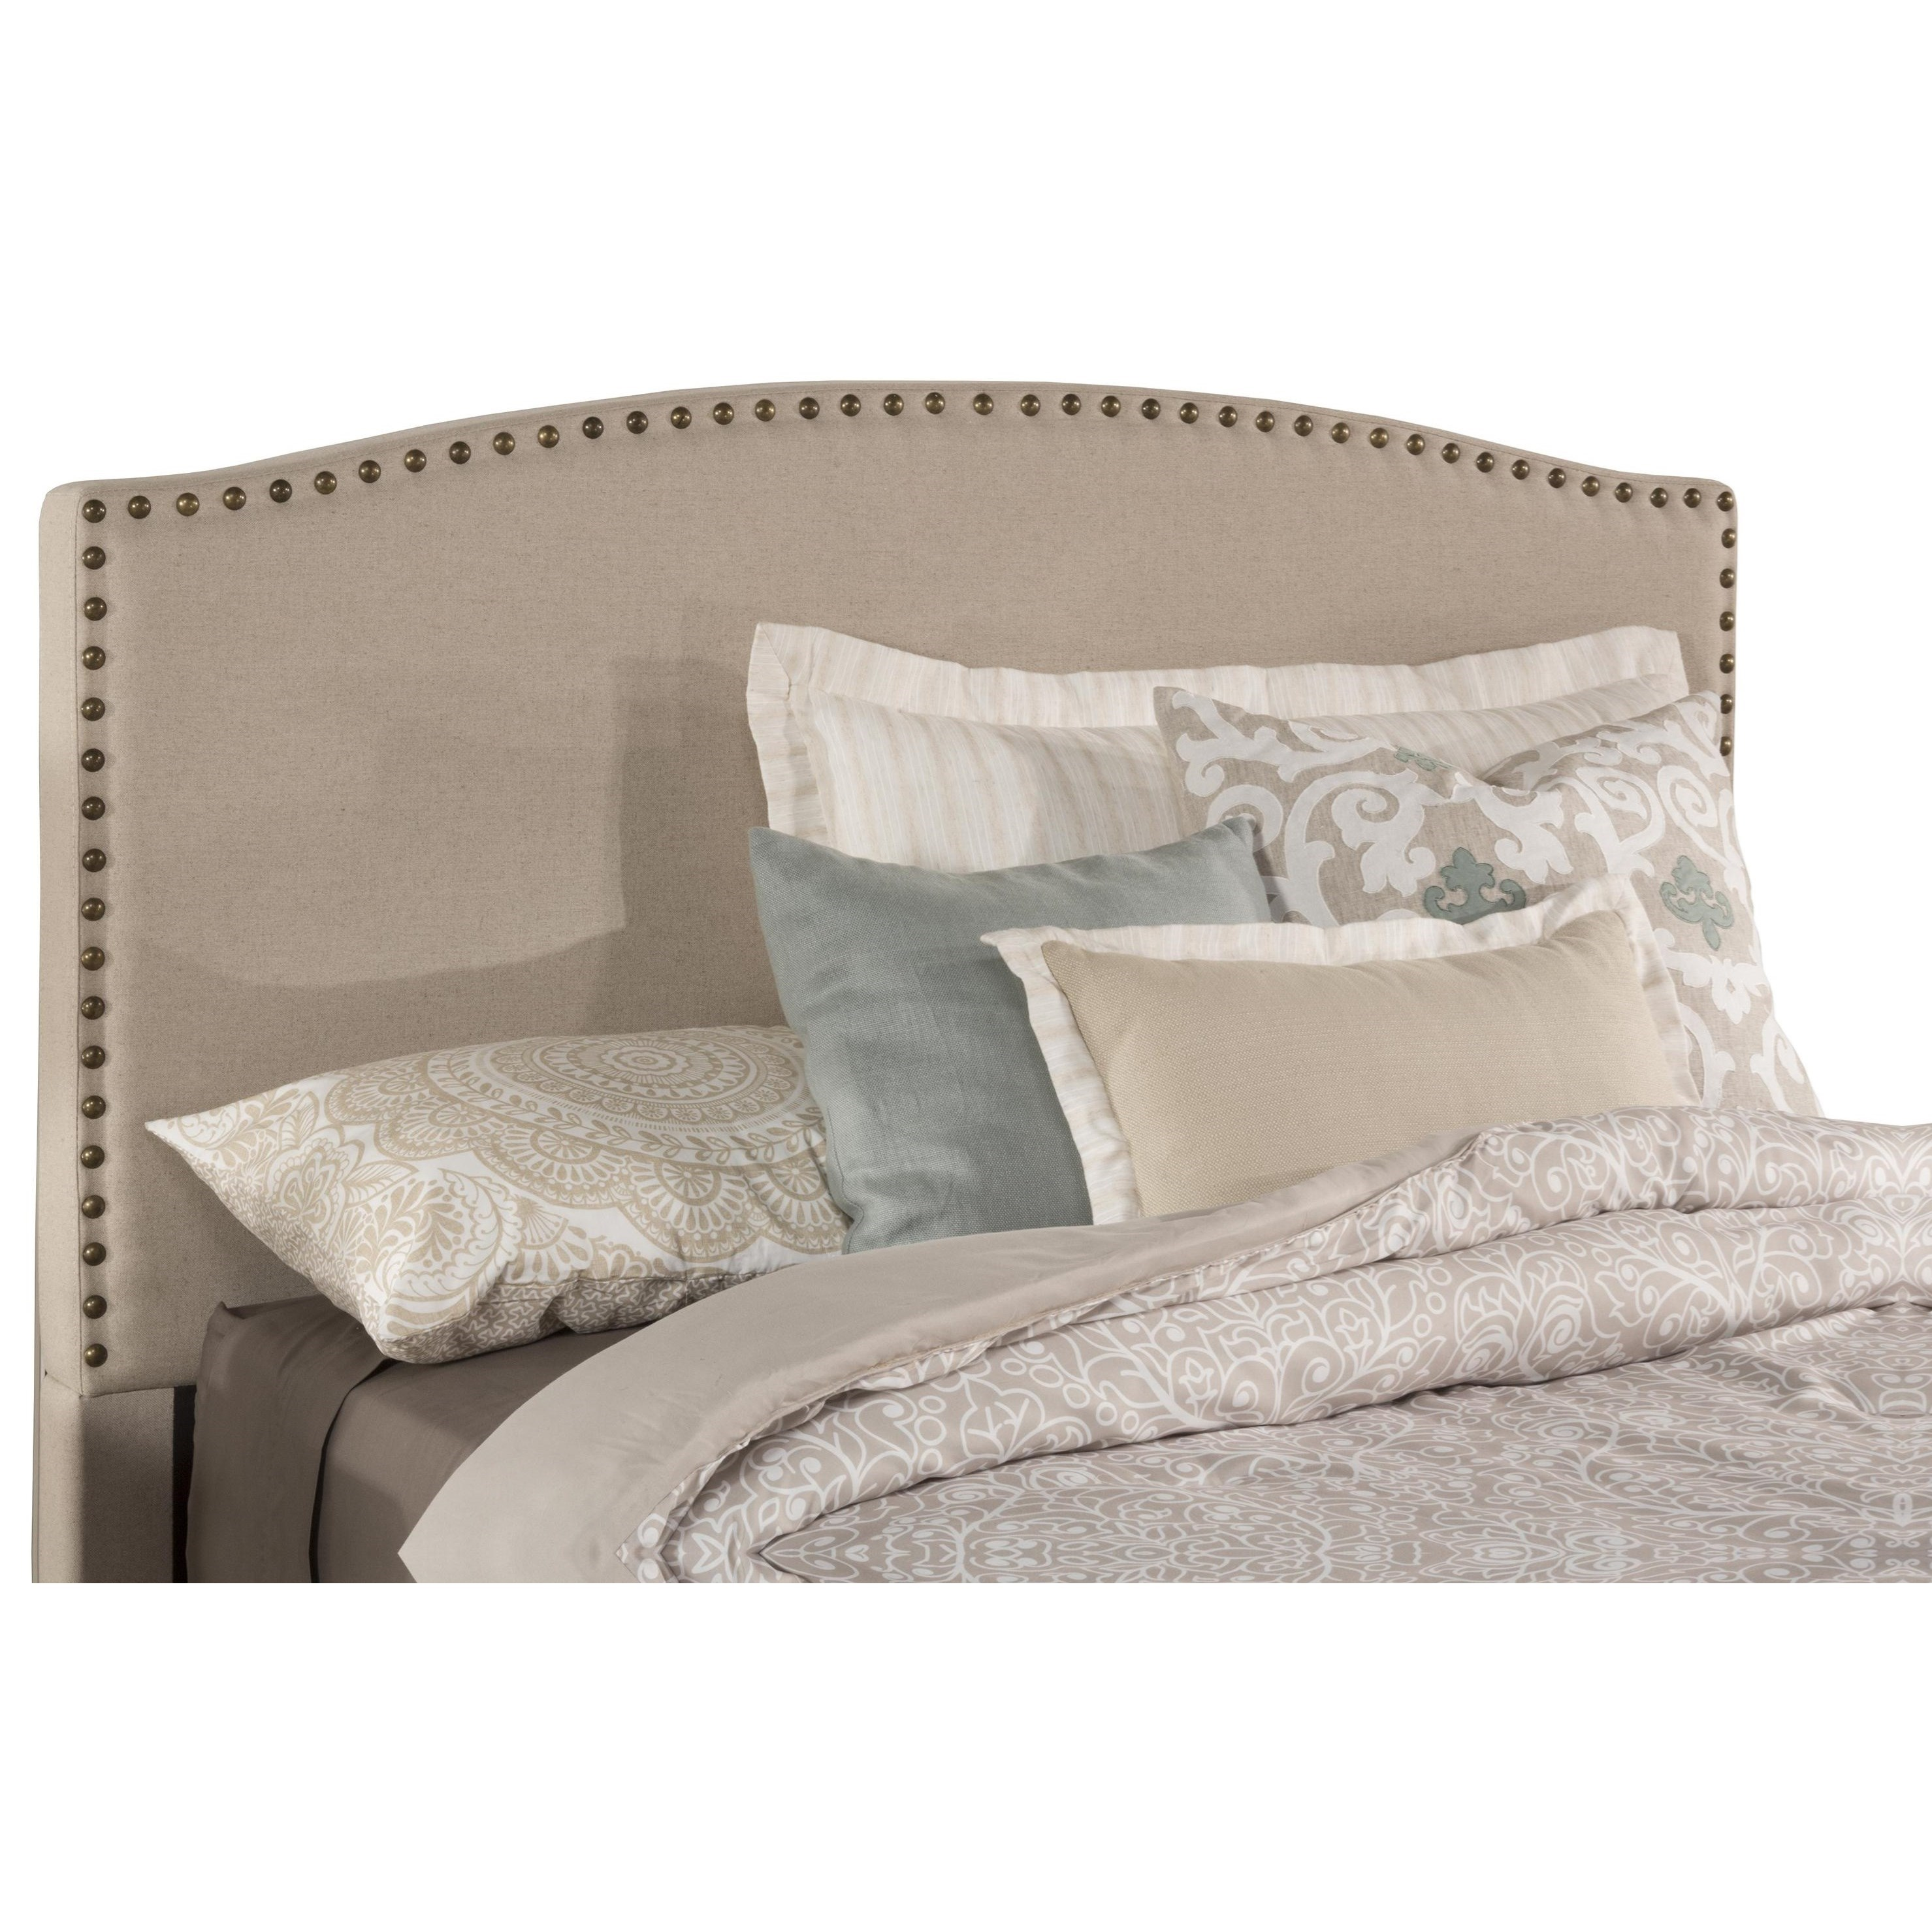 Hillsdale Kerstein Twin Headboard - Item Number: 1932-372